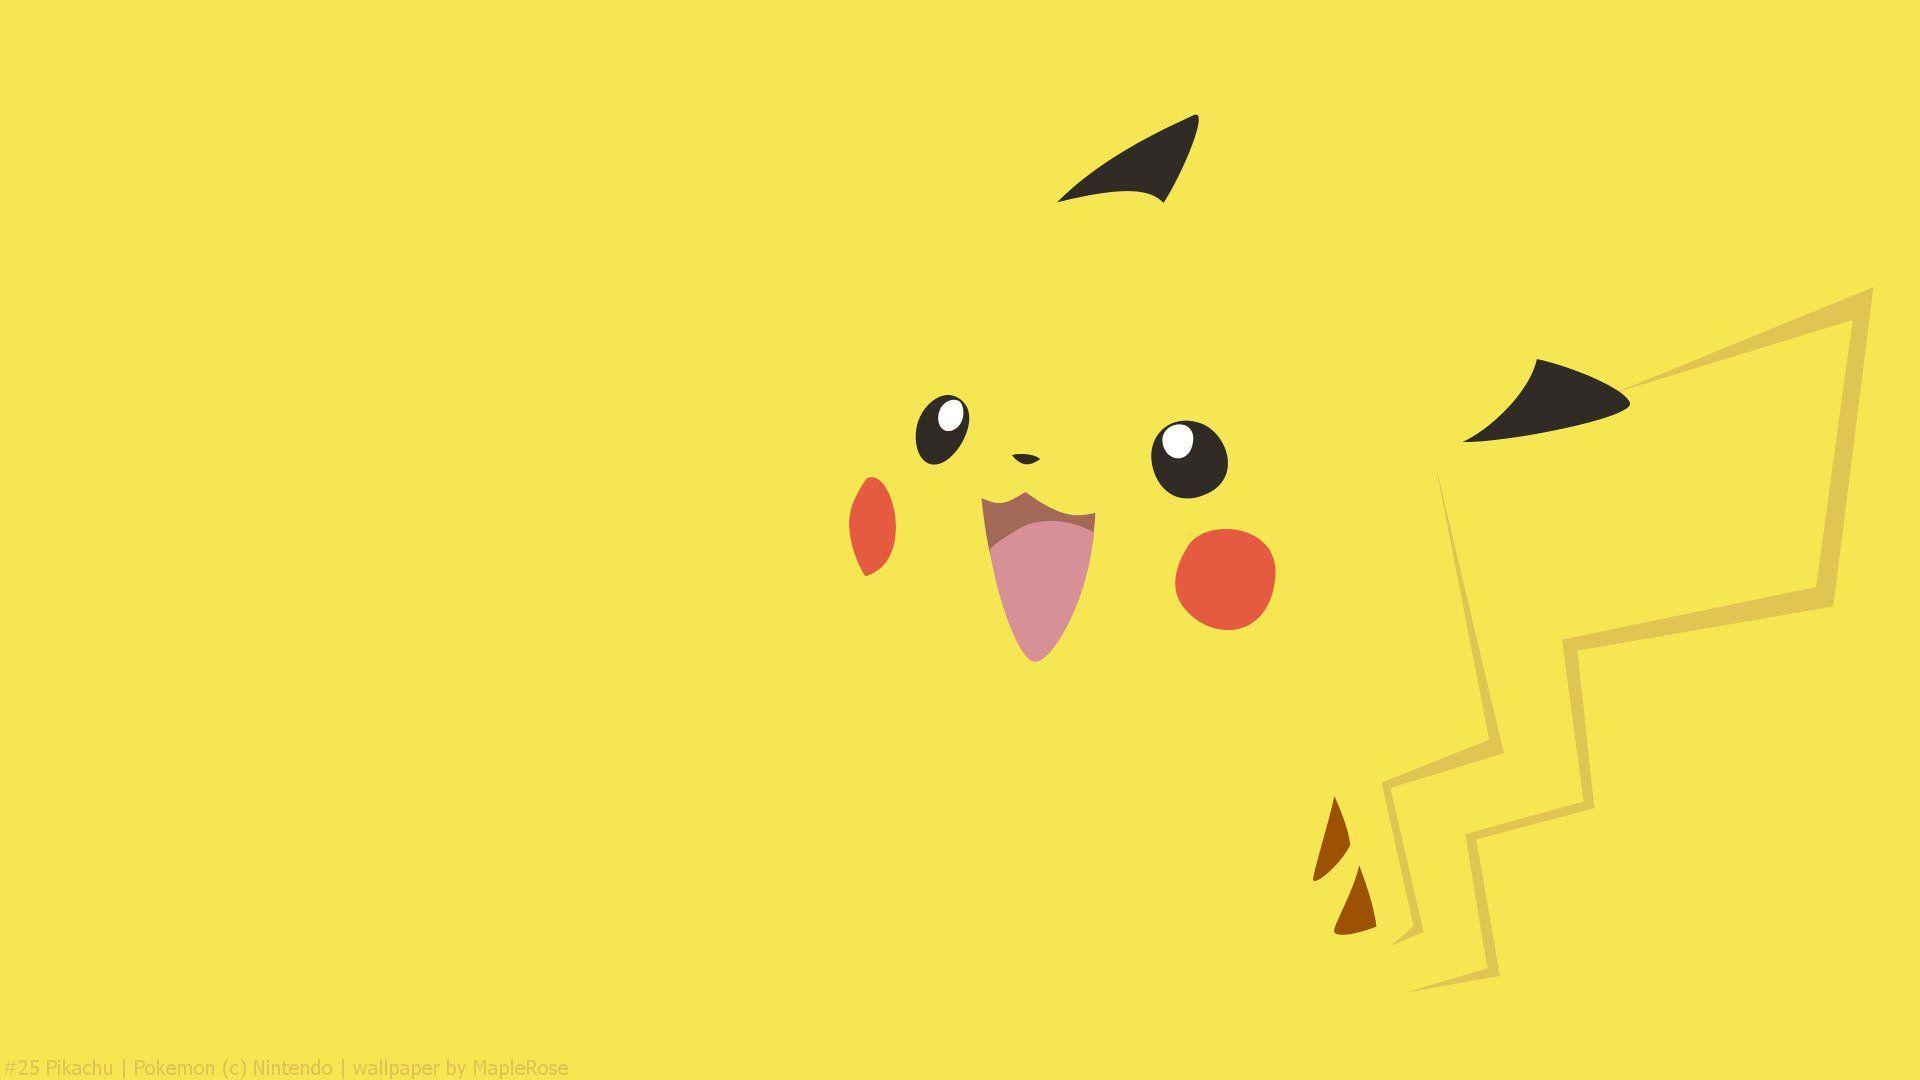 Pokémon Yellow: Special Pikachu Edition HD Wallpapers